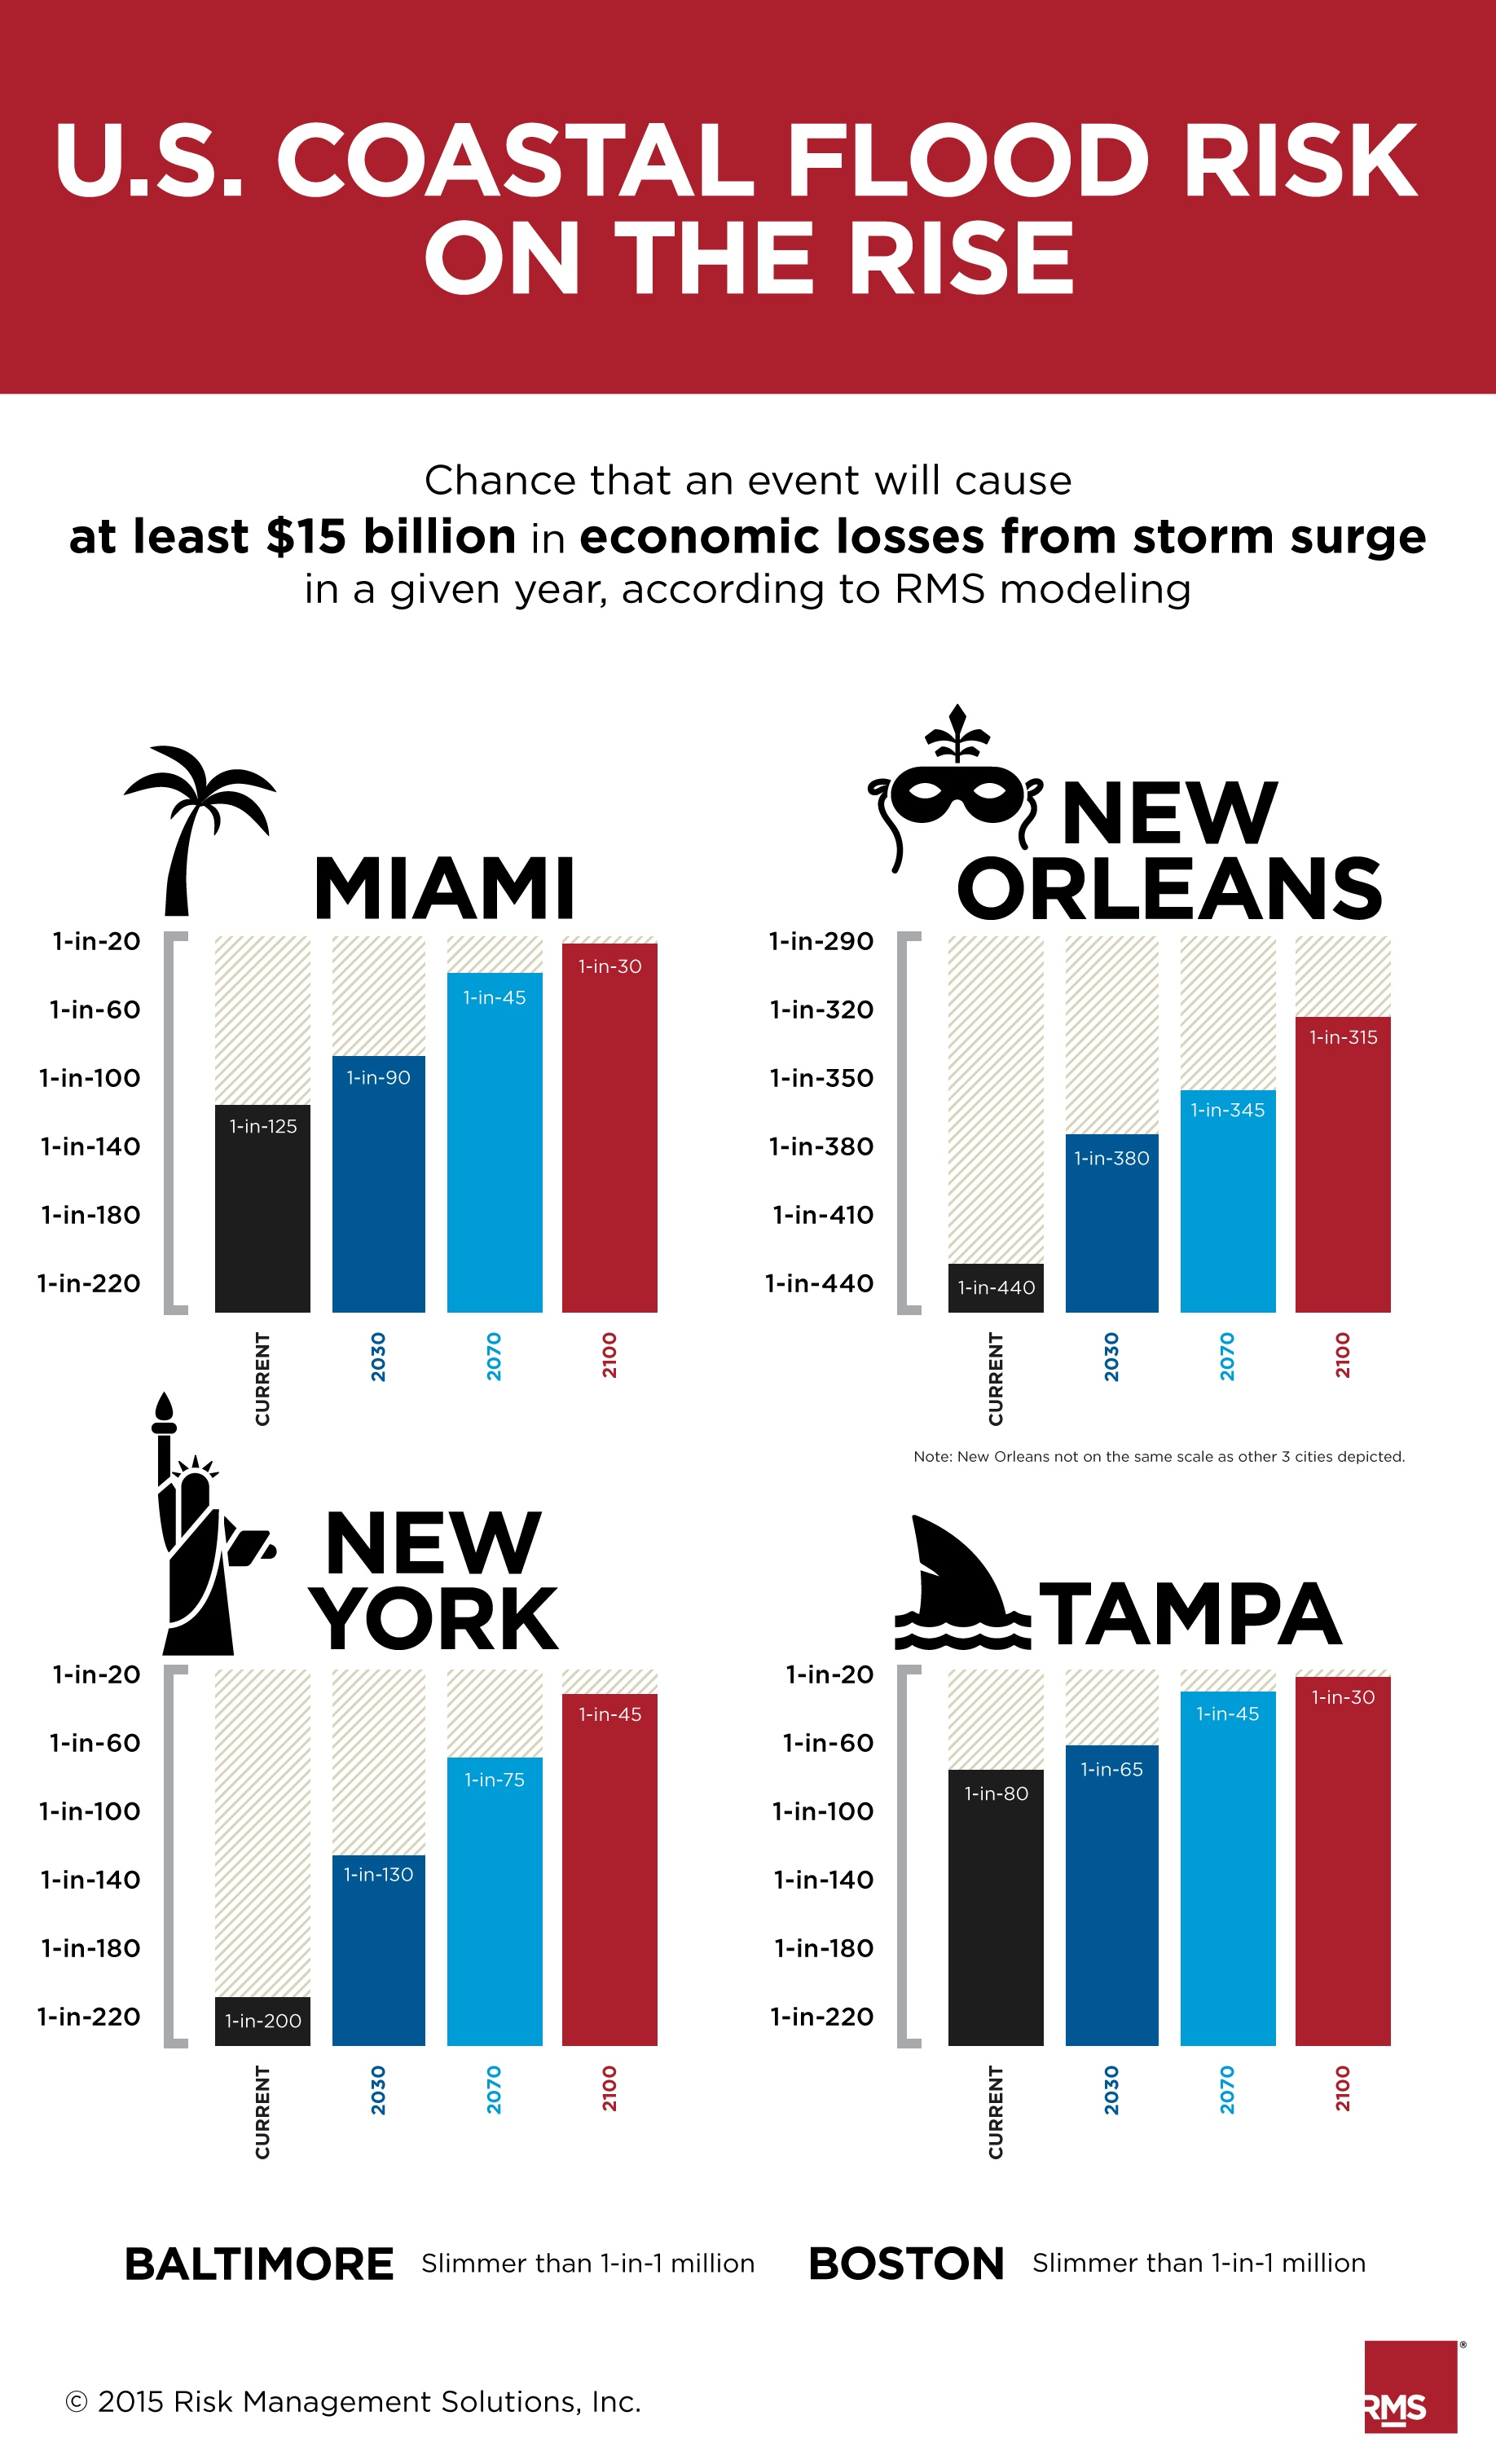 10 Years After Katrina, Coastal Cities Face Greater Flood Risk: RMS